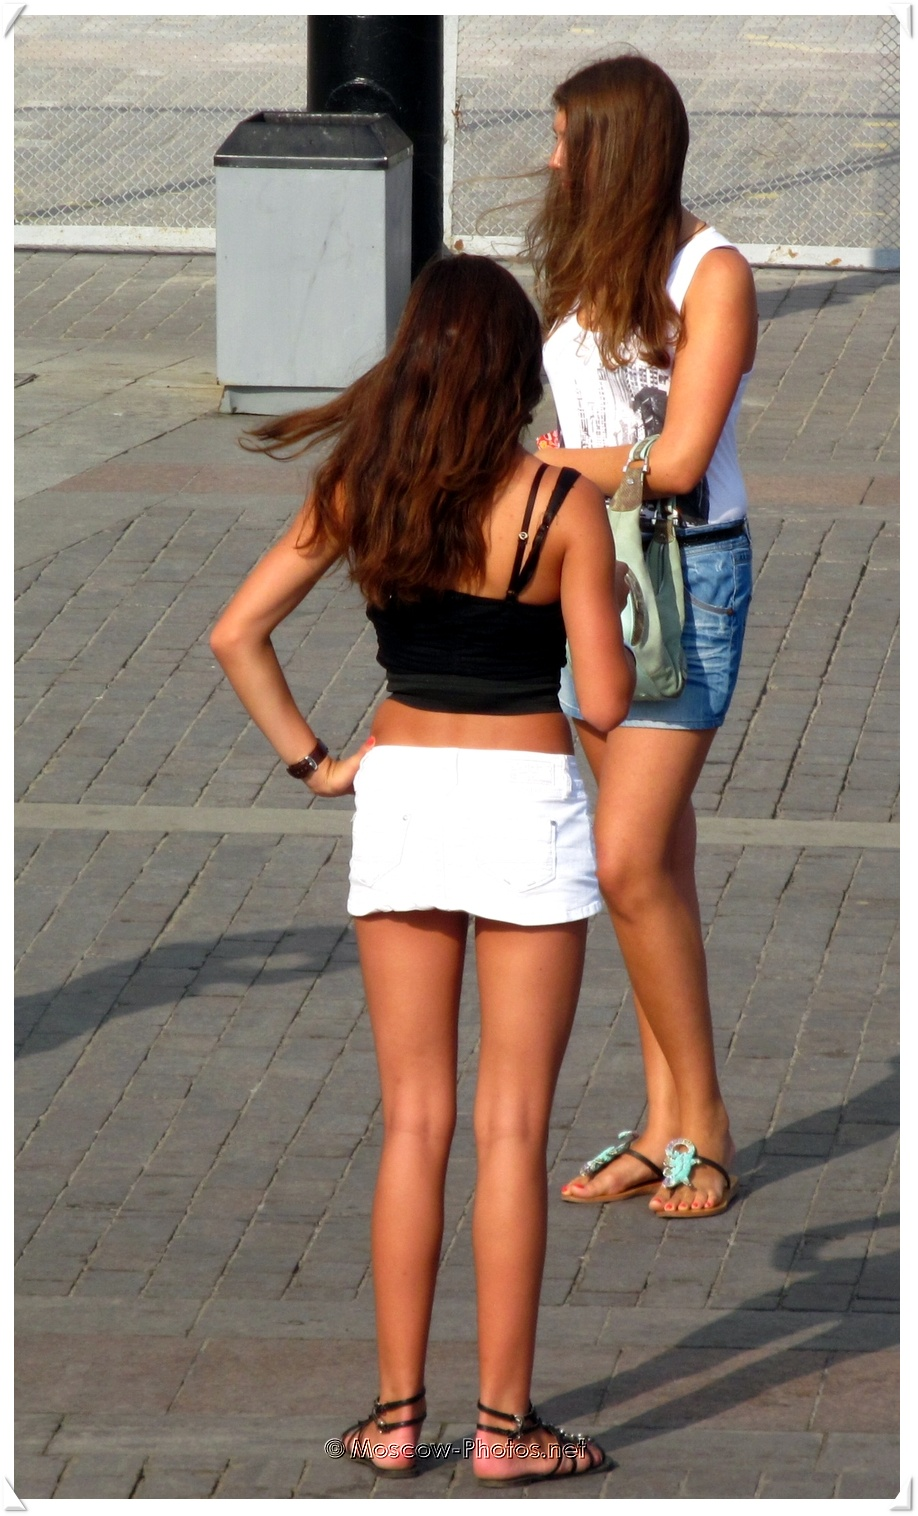 Hot Moscow Summer Babes